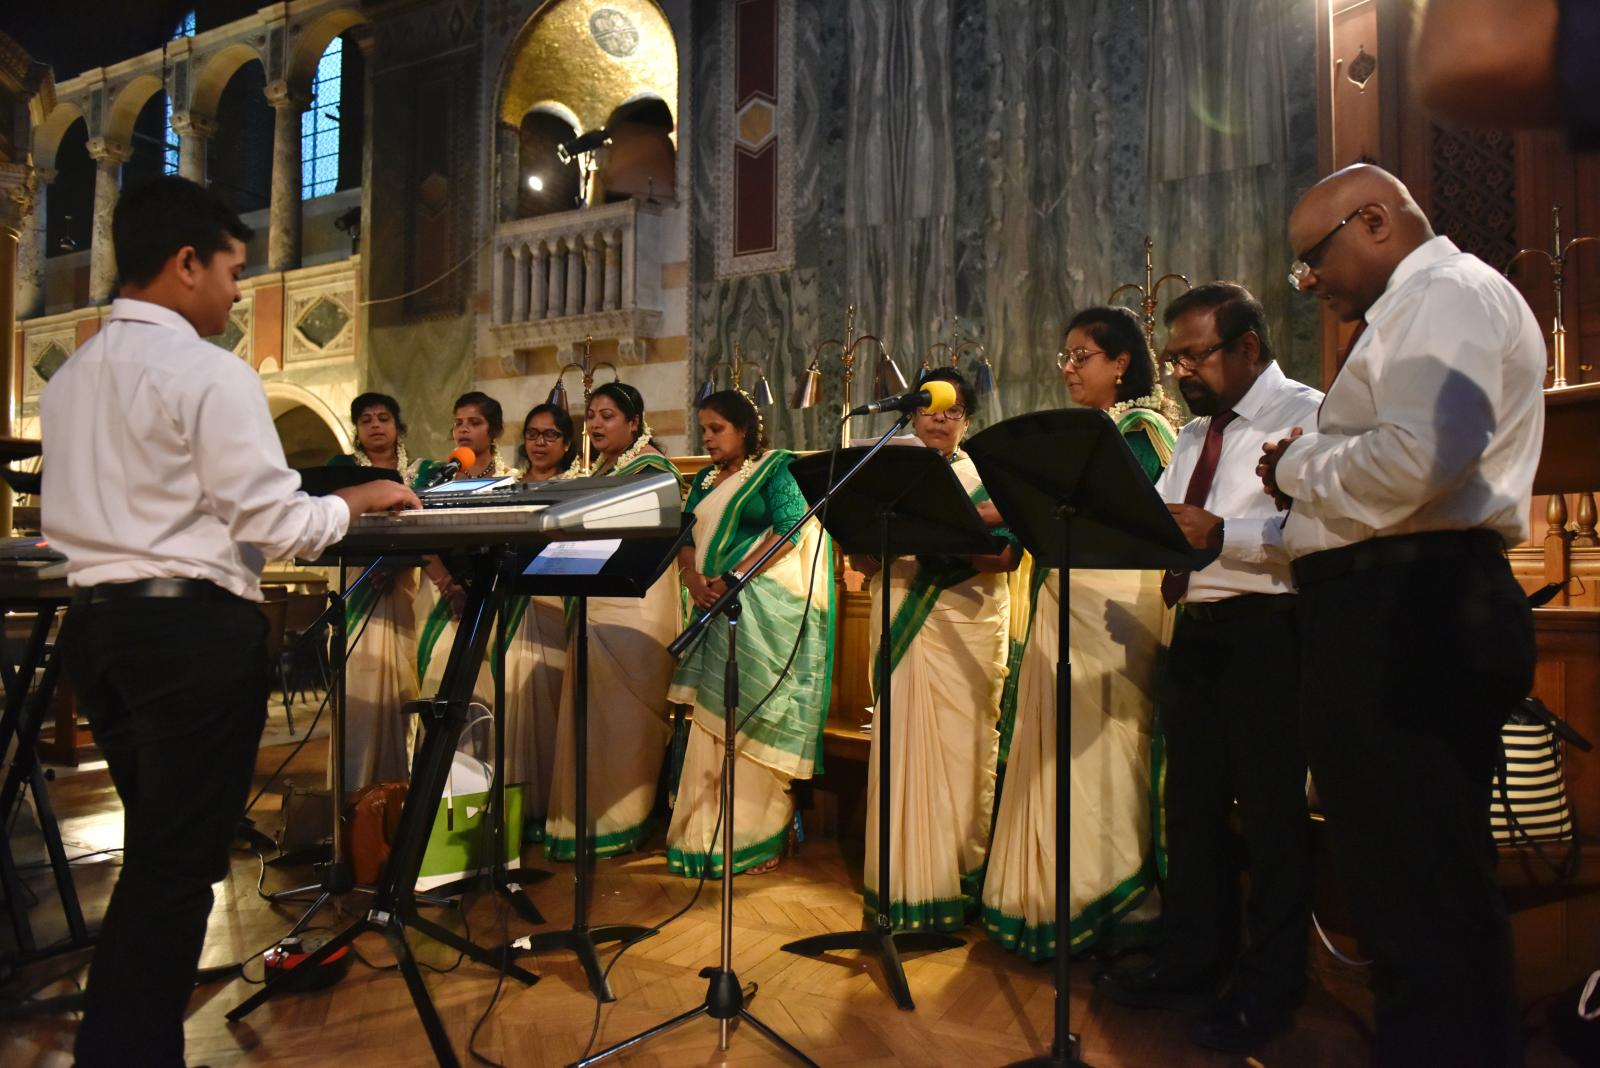 Bishop Paul celebrates International Mass on World Day of Migrants and Refugees - Diocese of Westminster